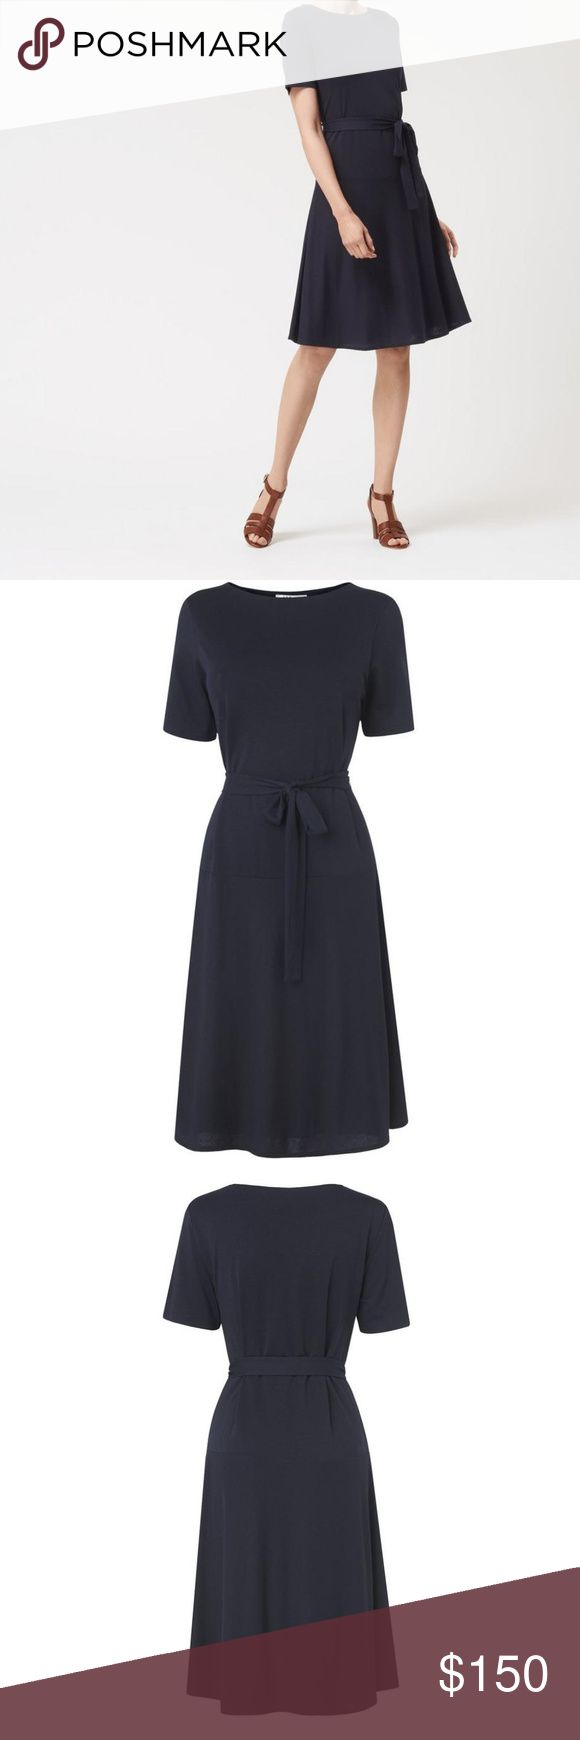 L.K. Bennett Evelyn Dress- Navy T shirt dress The T-shirt dress has never looked so chic. This off-duty style is cut from a soft cotton-blend and playfully flares at the hem. Use the waist-tie to define the silhouette, and style with bare legs and sandals for the perfect vacation-ready look.  Fabric Composition: Main: 68% Lyocell, 32% Cotton Lining: 100% Viscose  UK 10/ US 6  Smoke free home NO TRADES---REASONABLE OFFERS WELCOME LK Bennett Dresses